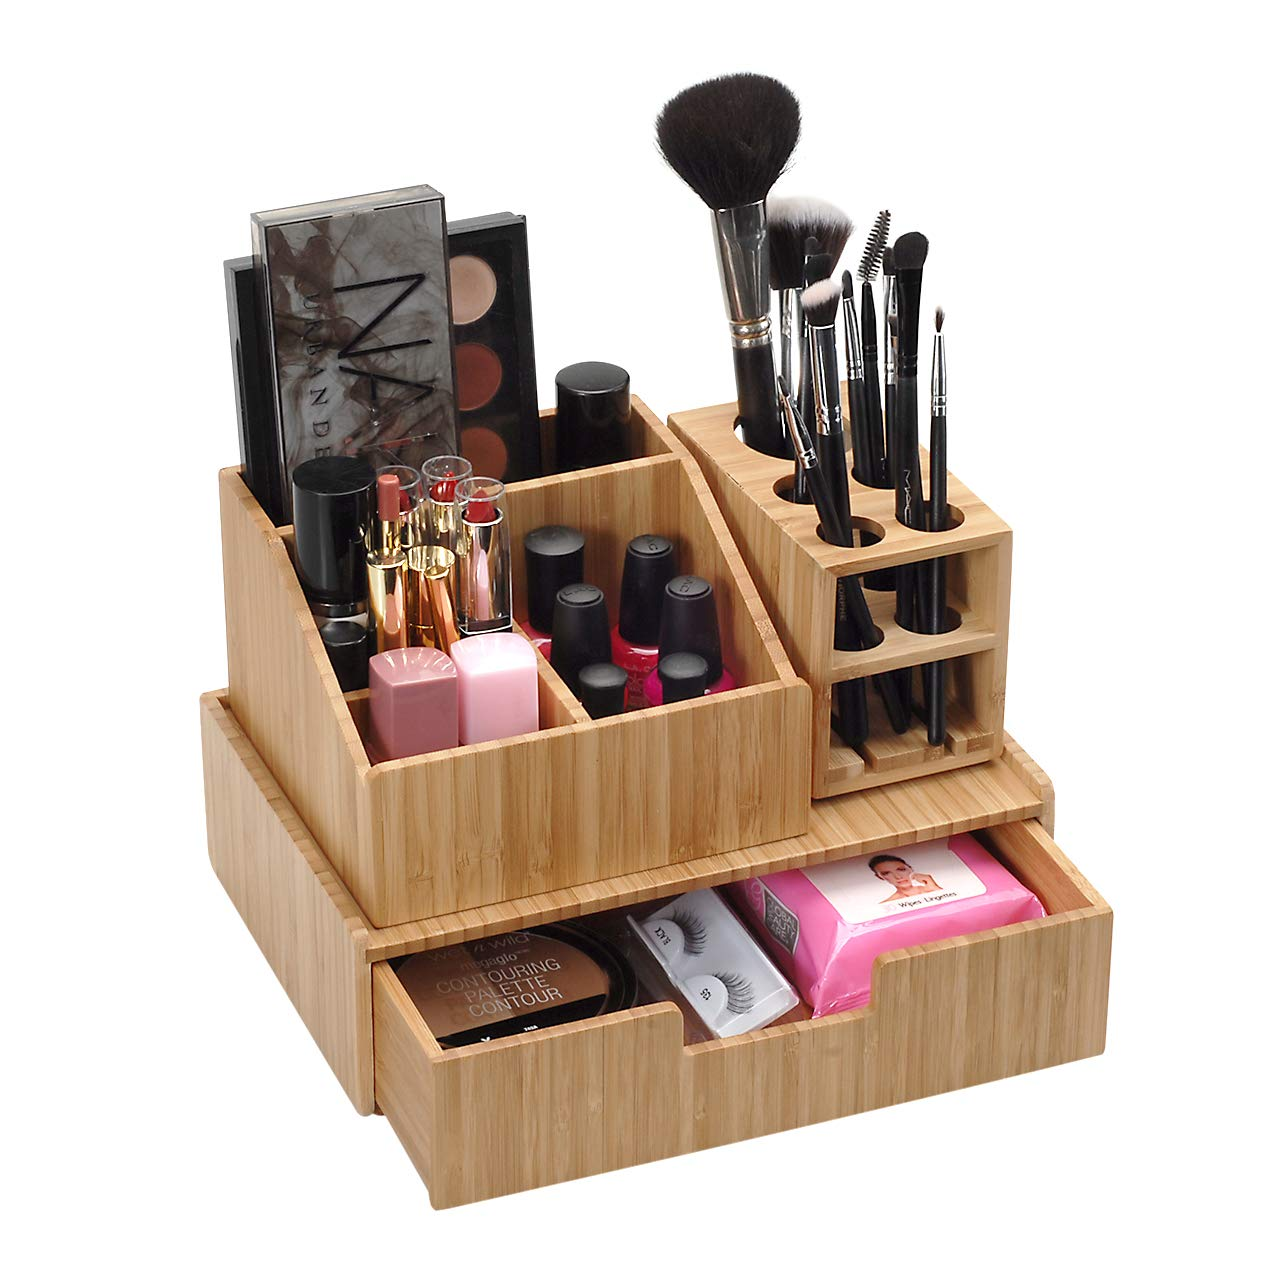 Amazon Com Bamboo Makeup Organizer Complete Combo 3 Pc Set Includes 5 Section Brush Holder 4 Compartment Cosmetic Caddy Drawer For Added Extra Storage Space Beauty